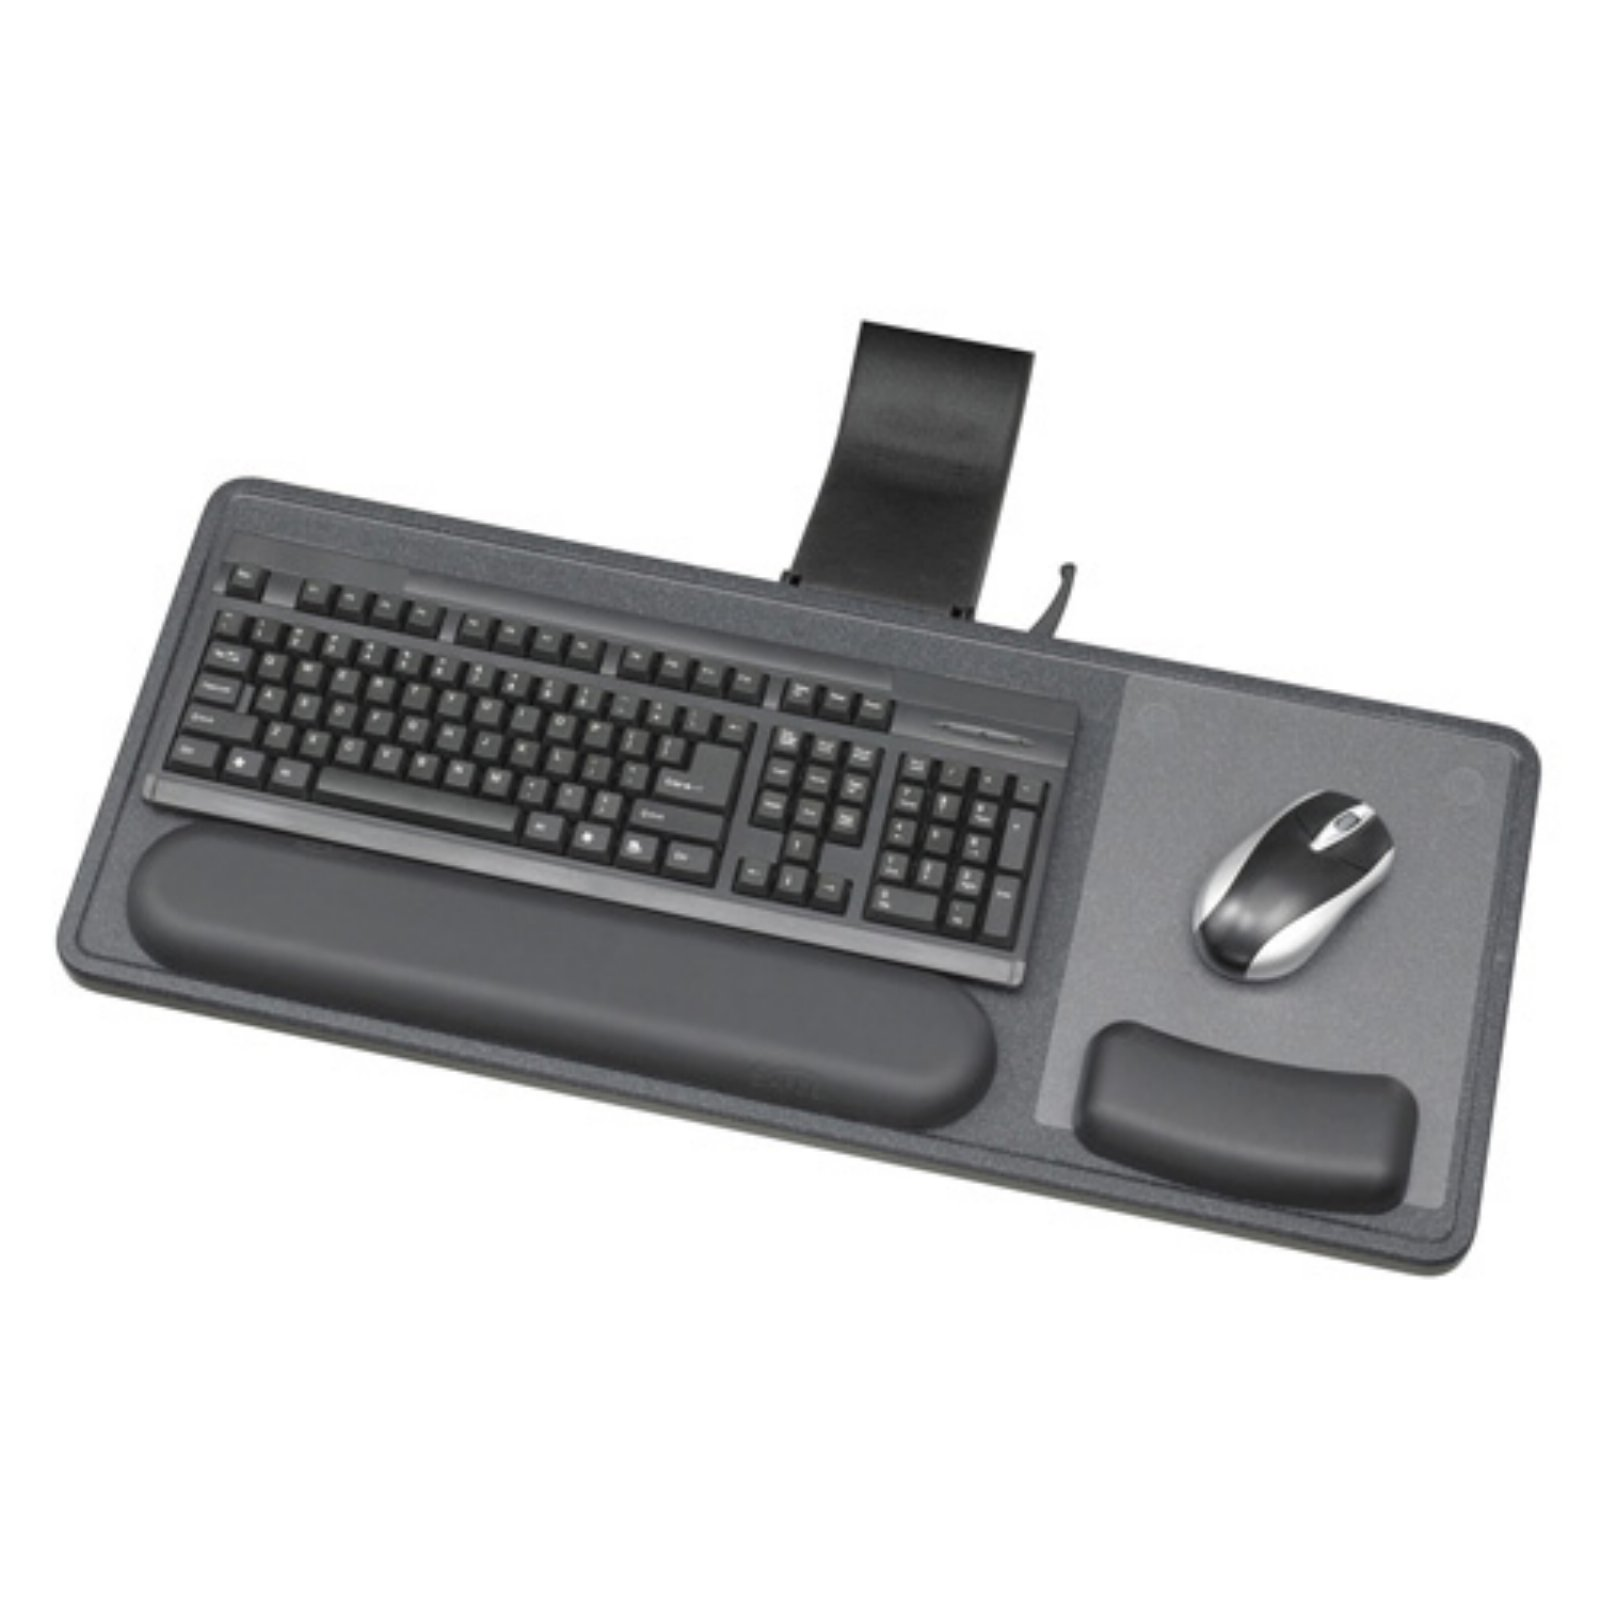 Safco Ergo-Comfort Sit/Stand Articulating Keyboard/Mouse Arm